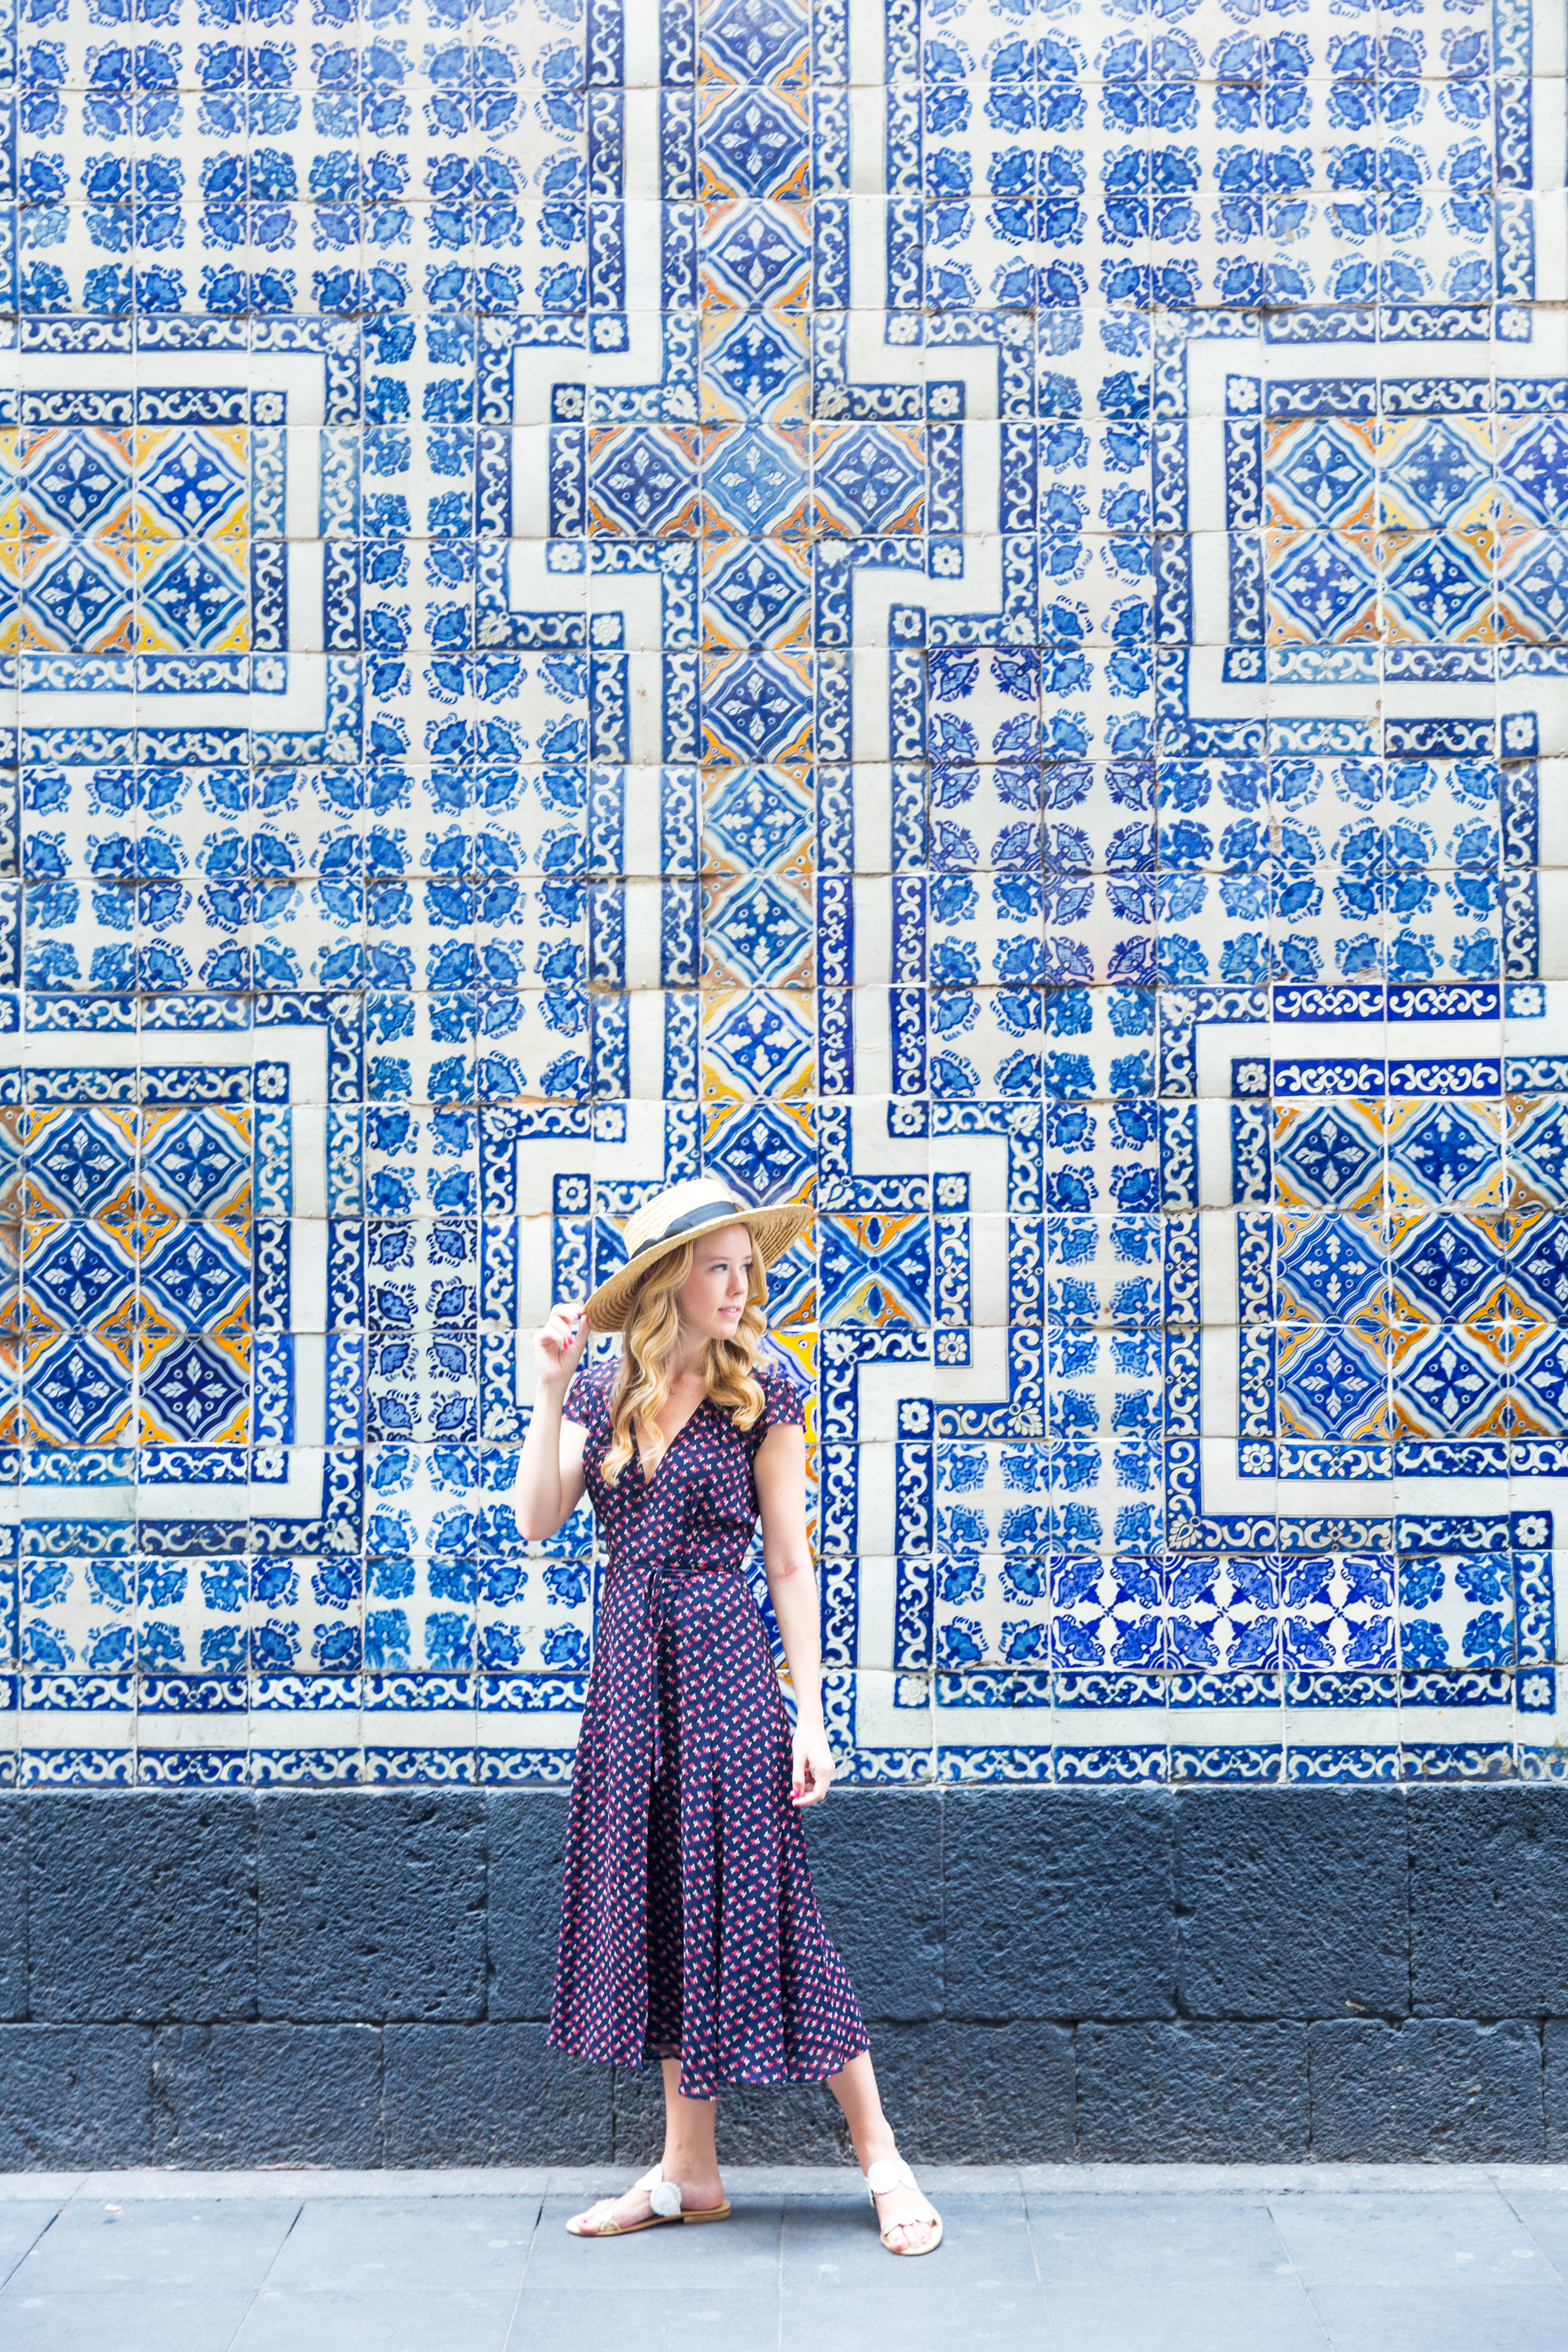 Mexico City Centro Historico Summer Outfit Pattern Wrap Dress_-4.jpg